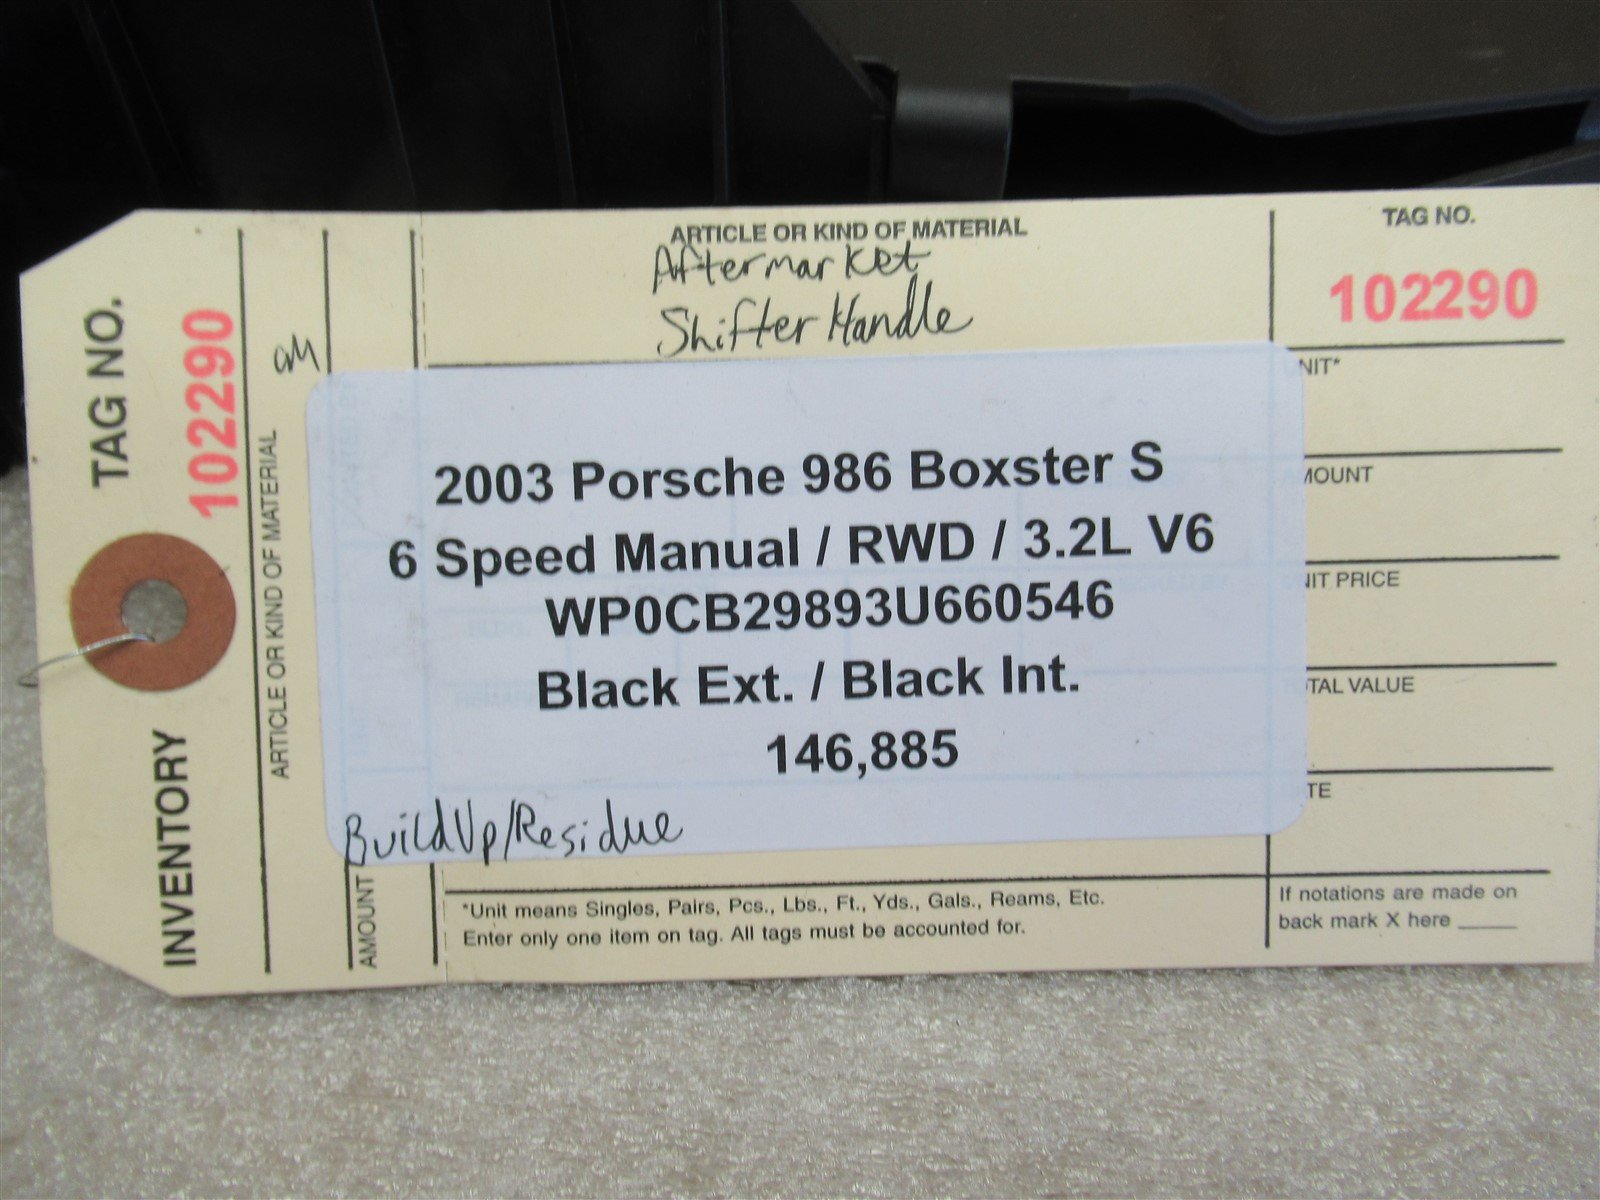 03 Boxster S RWD Porsche 986 AFTERMARKET 6 SPEED MANUAL SHIFTER HANDLE 146,885